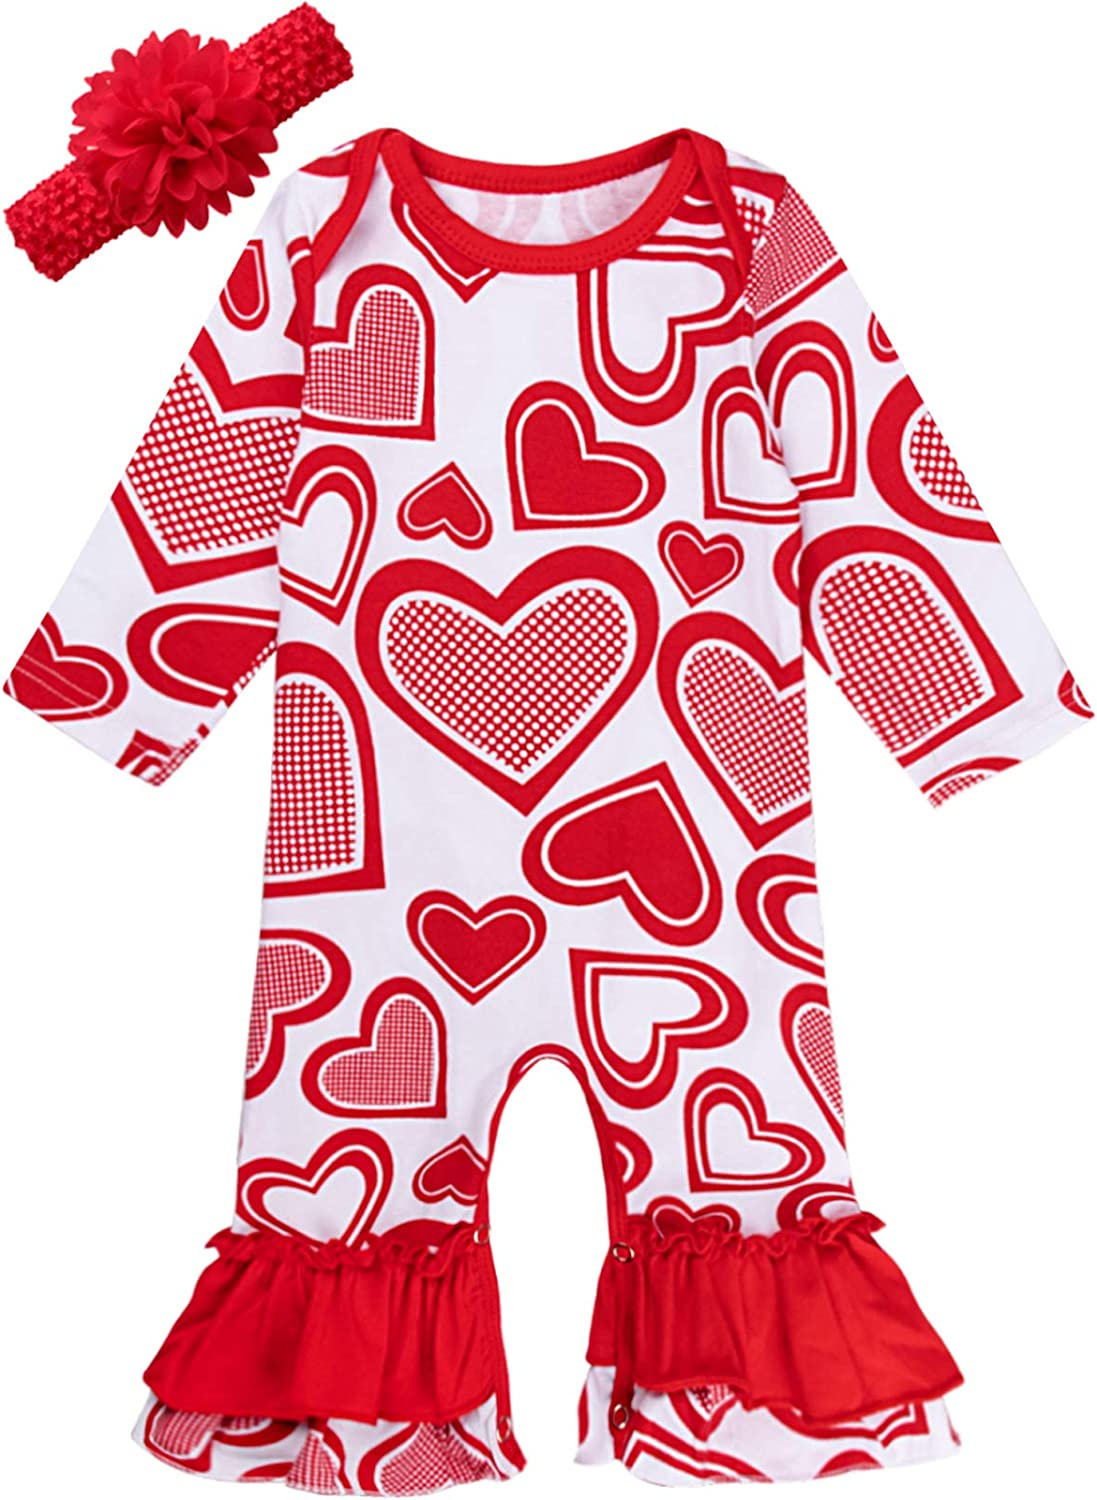 COSLAND Baby Girls' Max 84% OFF Ruffle Romper Outfits w Valentine Love Heart Super beauty product restock quality top